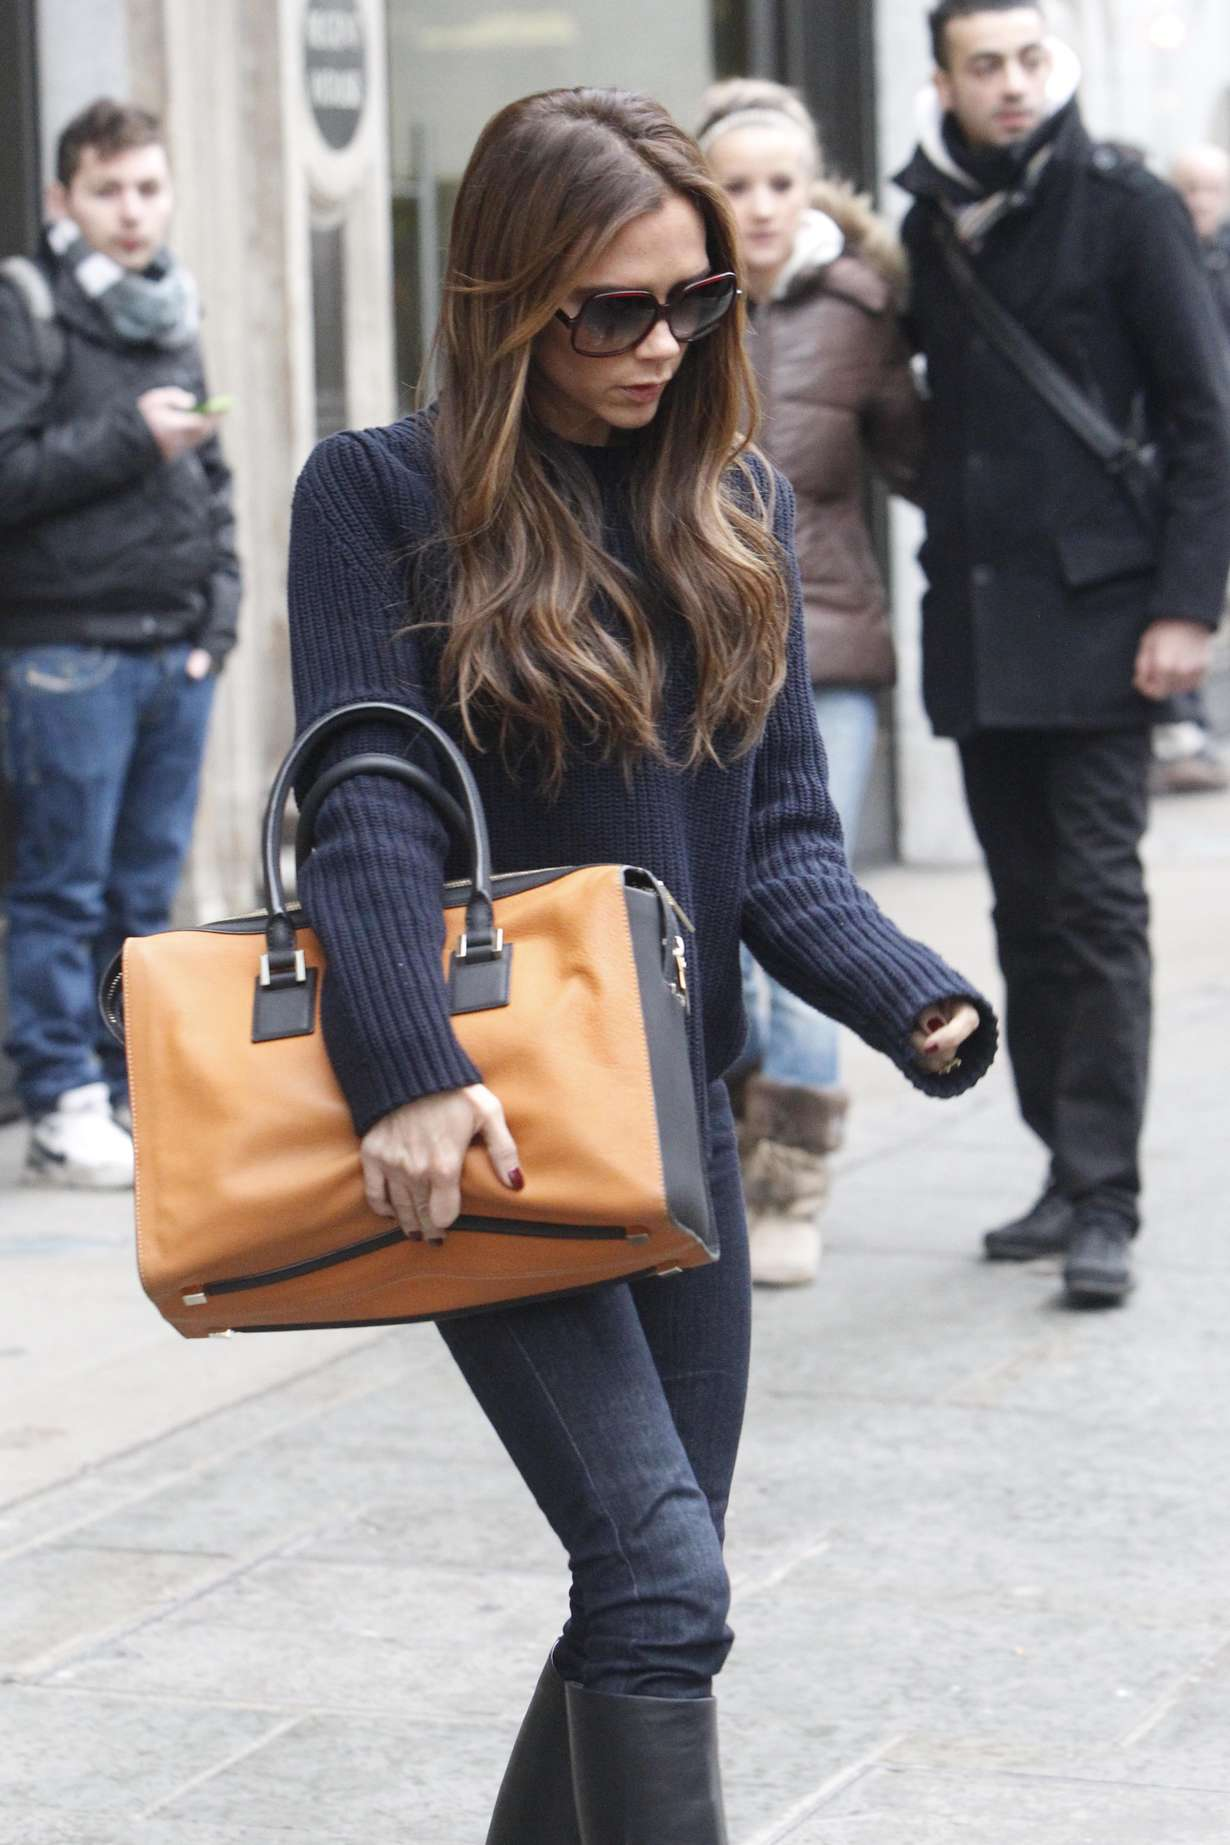 victoria beckham in jeans and boots 14 gotceleb. Black Bedroom Furniture Sets. Home Design Ideas